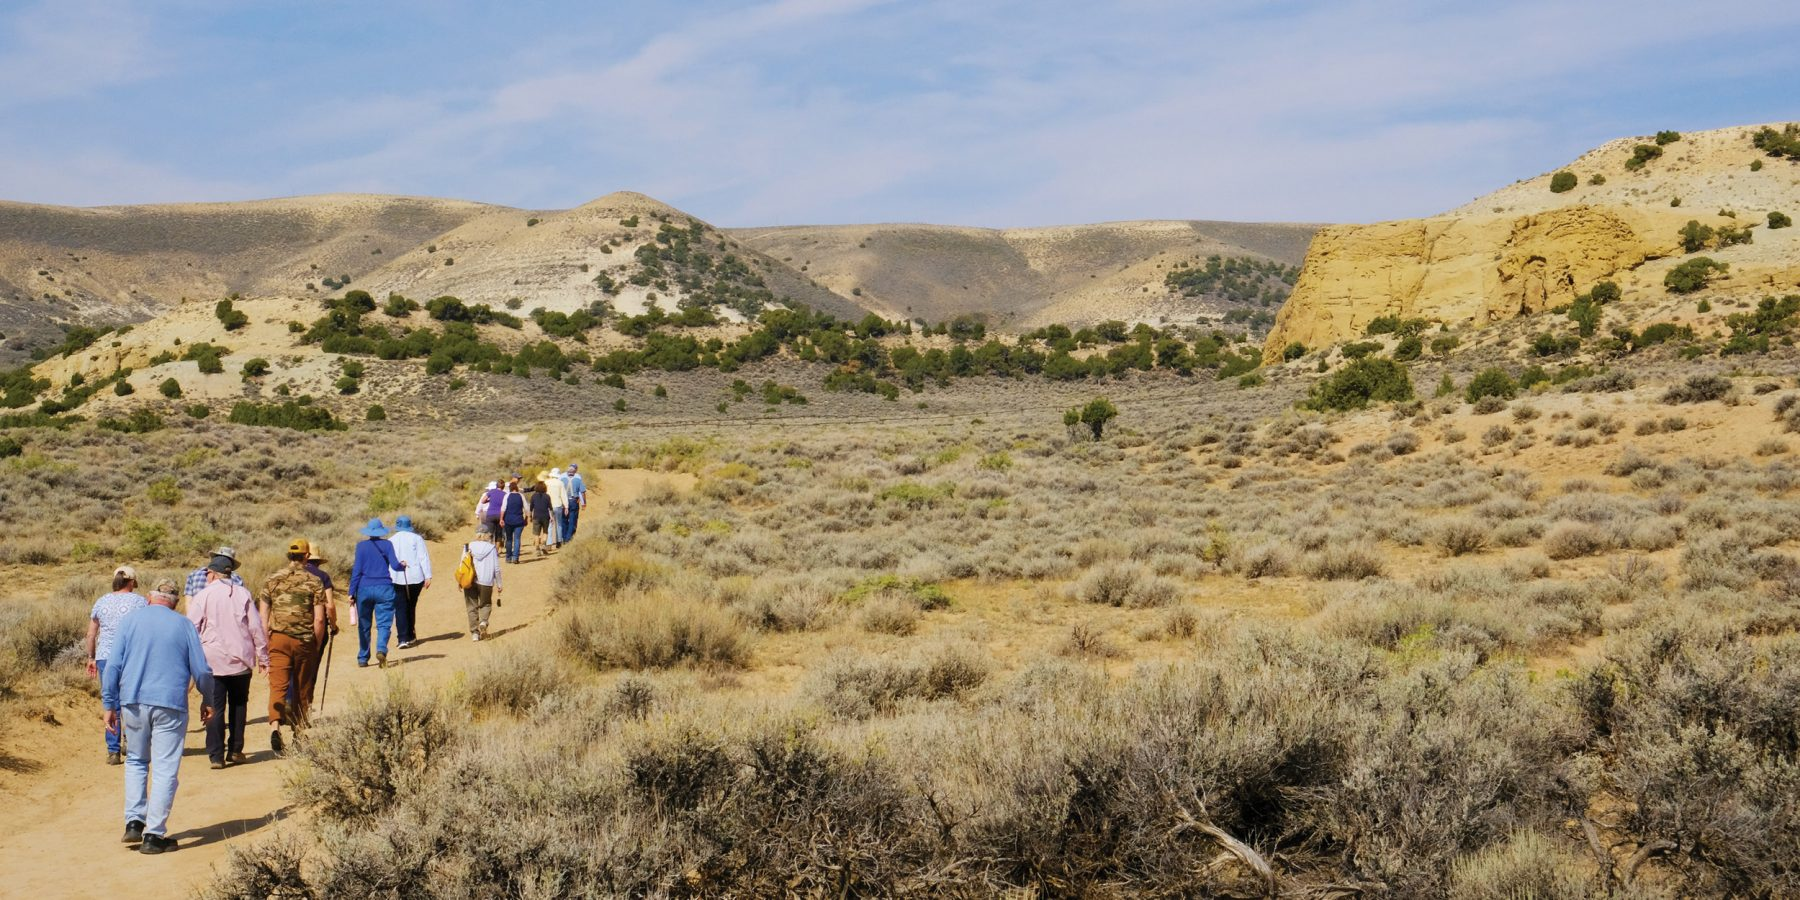 LET'S CELEBRATE WYOMING PUBLIC LANDS DAY, WHILE REMEMBERING A TROUBLED HISTORY